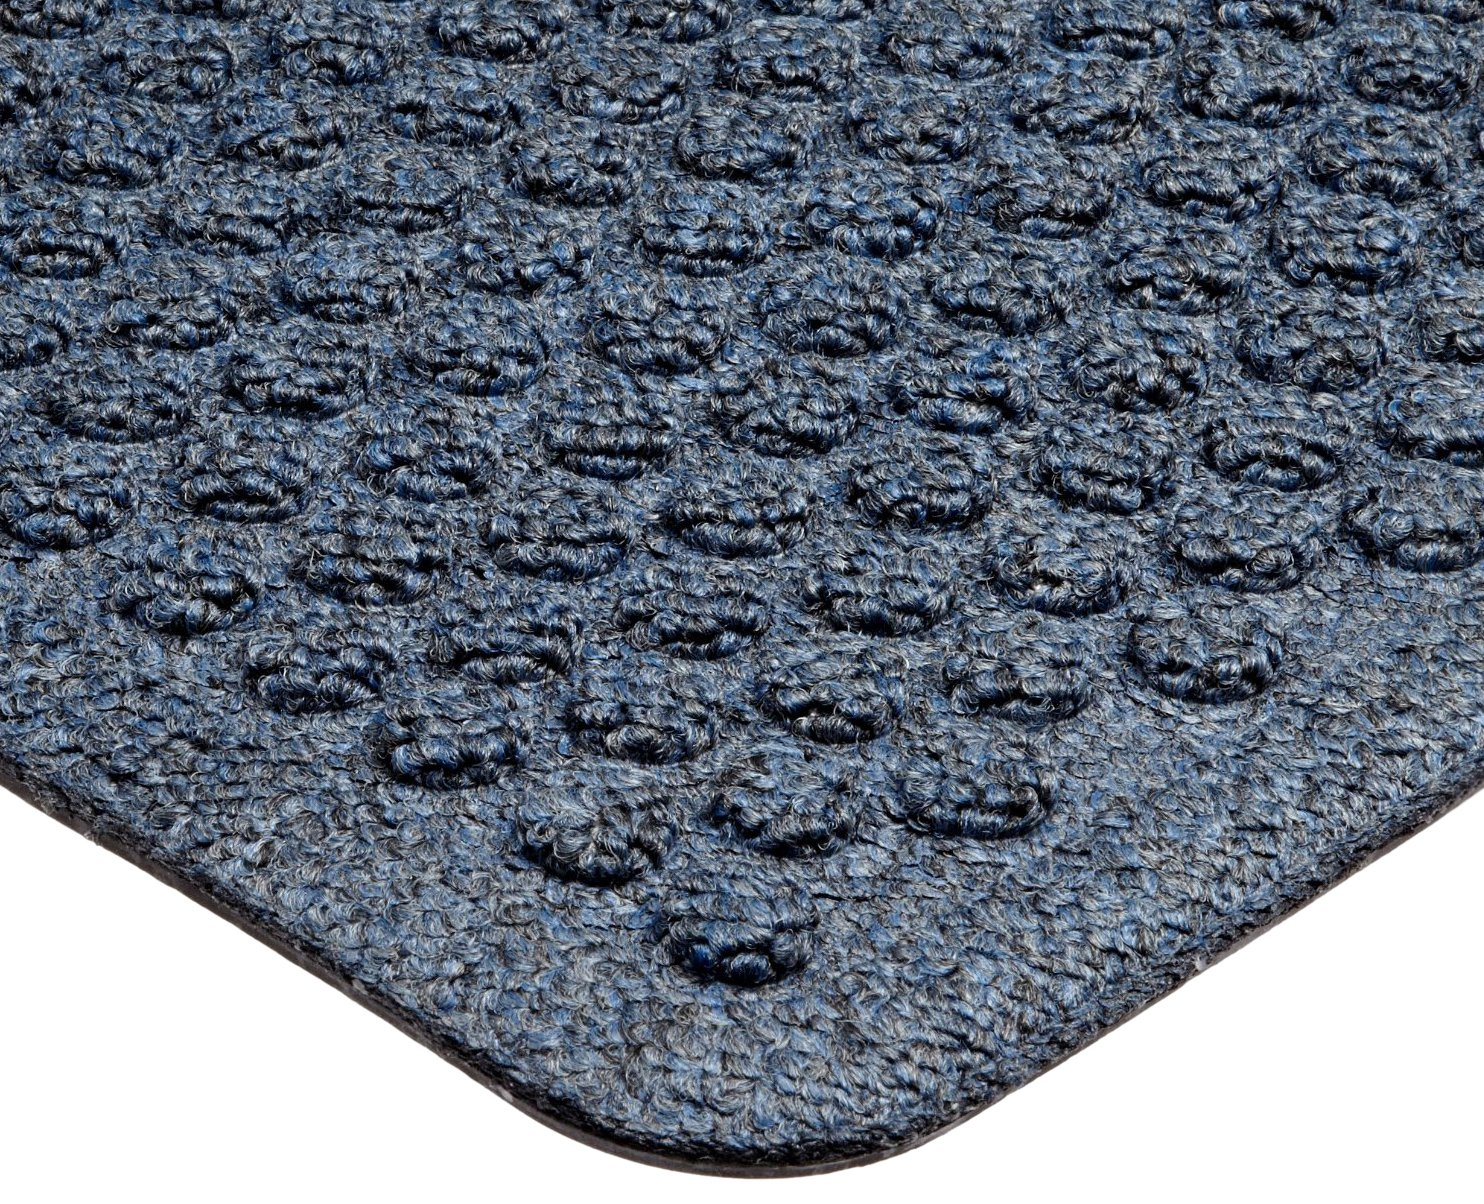 Notrax 150 Aqua Trap Entrance Mat, for Main Entranceways and Heavy Traffic Areas, 3' Width x 5' Length x 3/8'' Thickness, Slate Blue